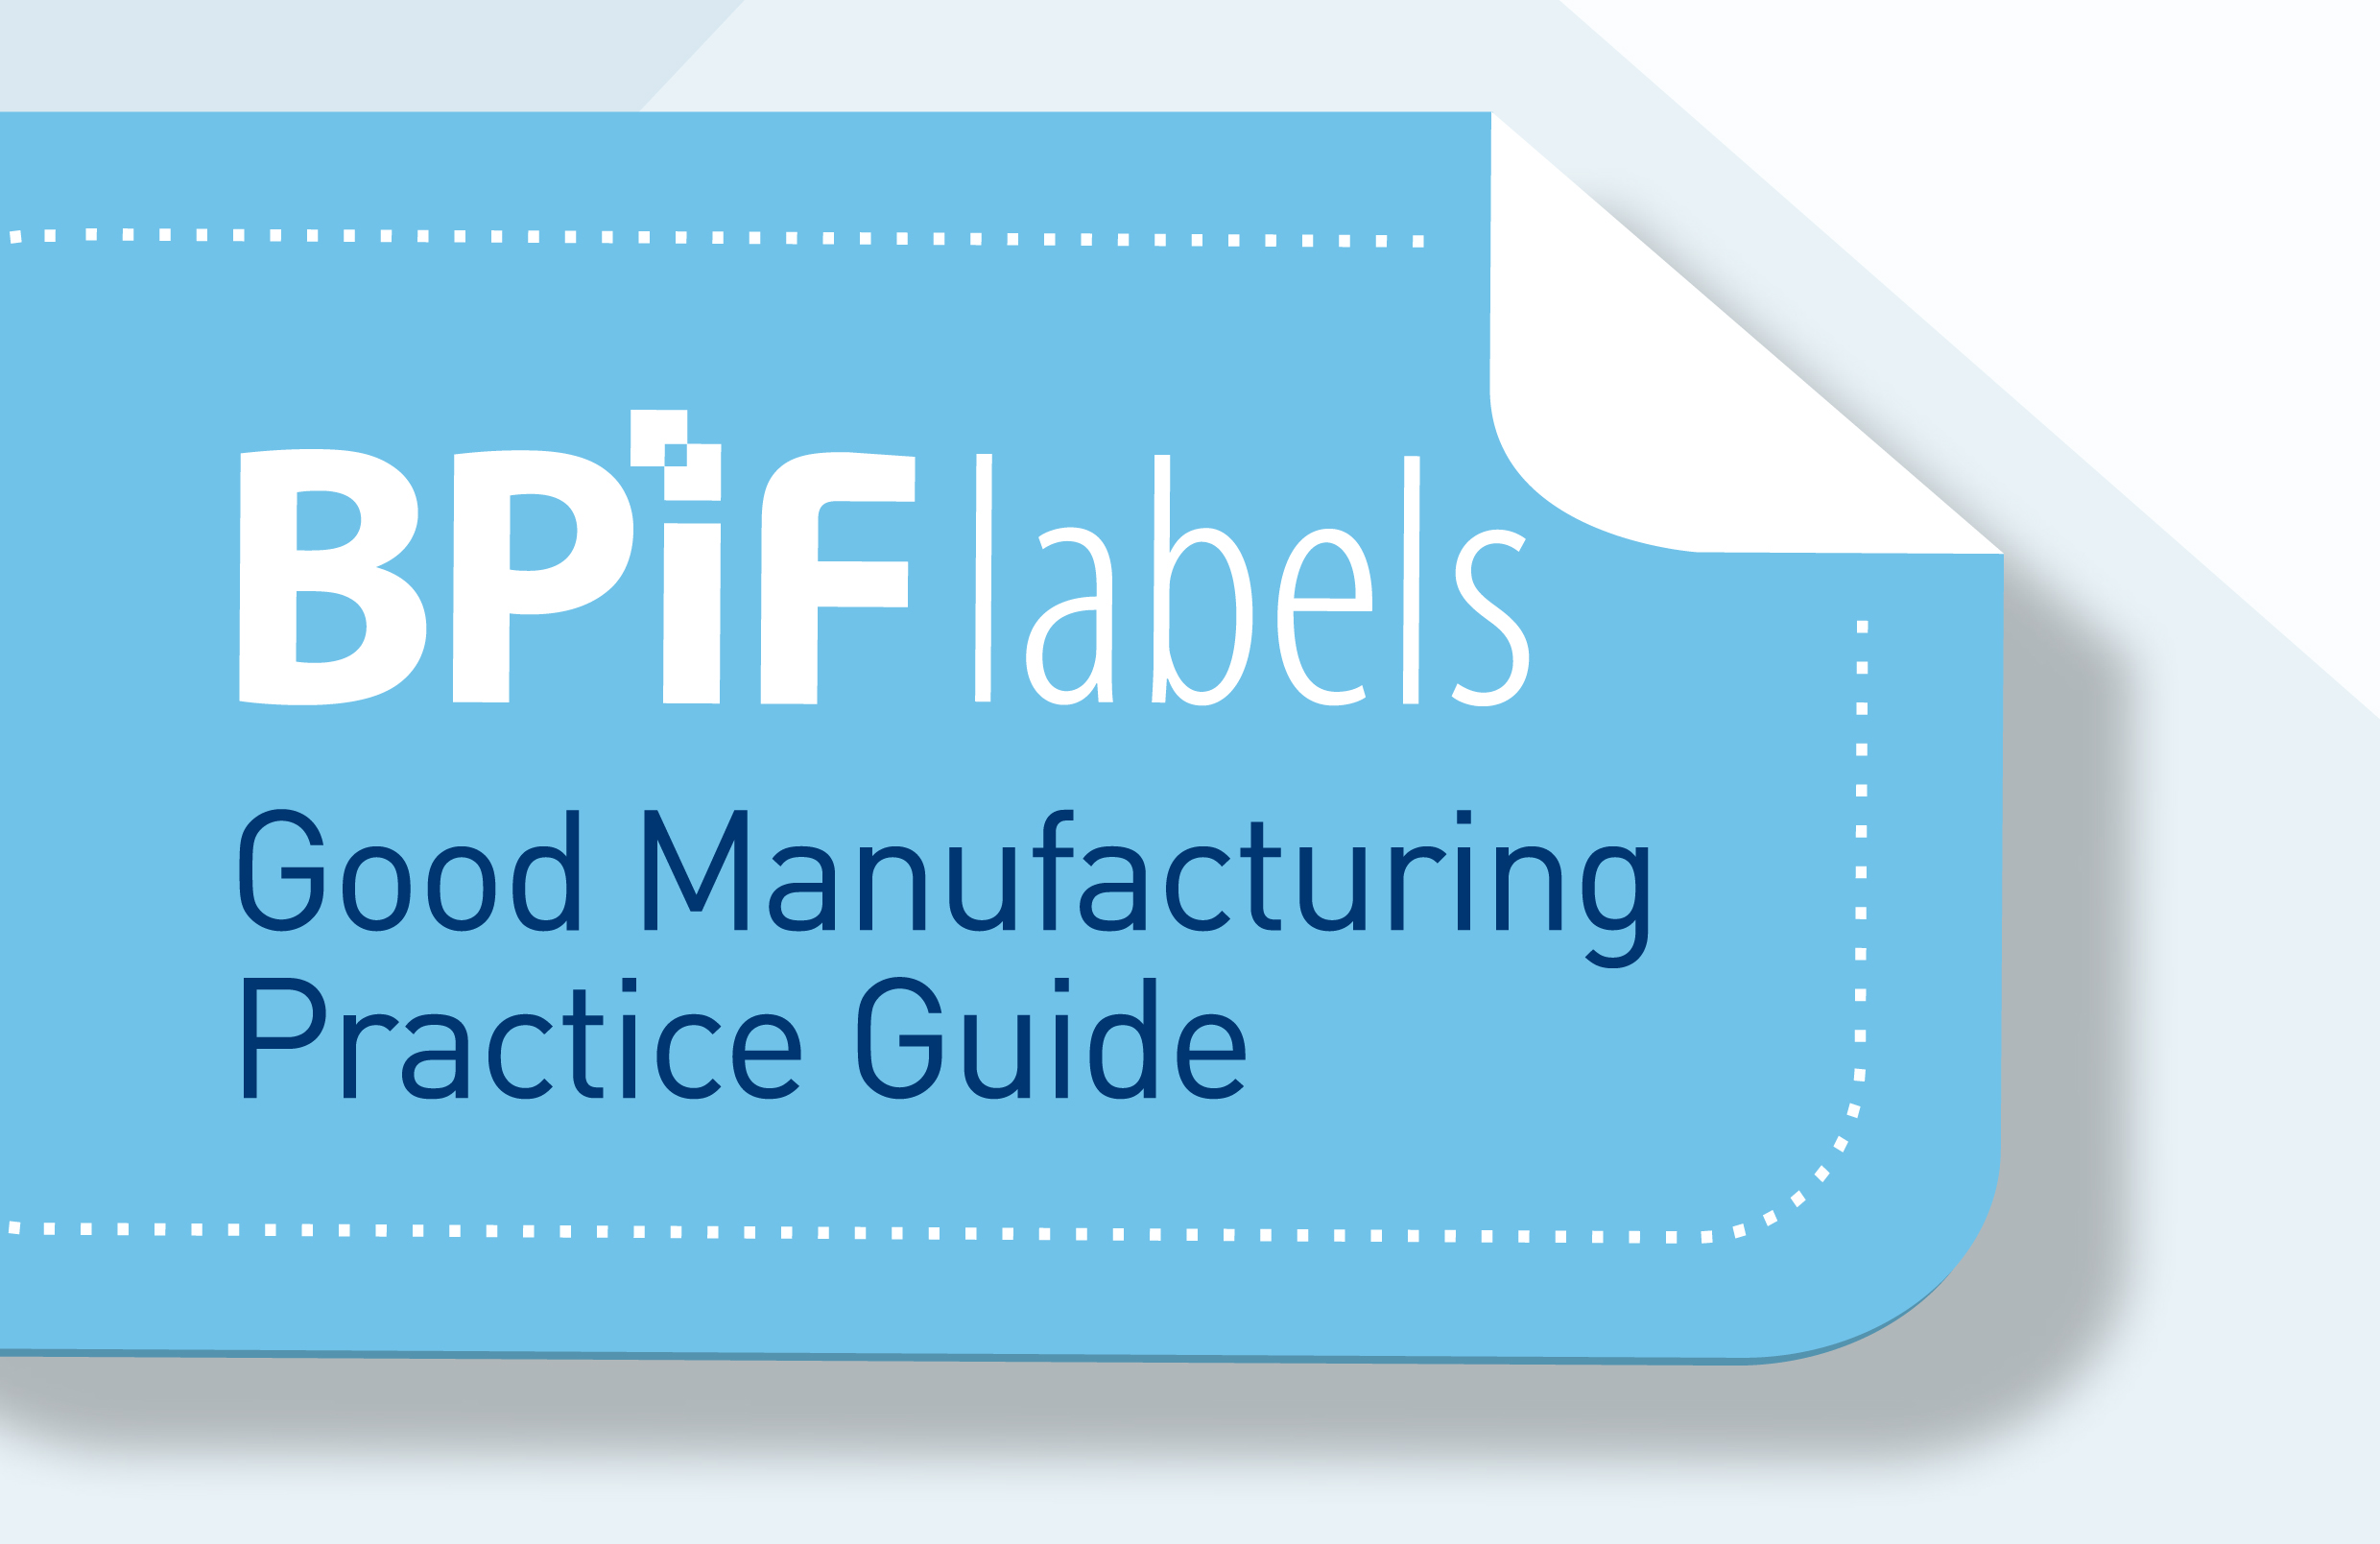 How the BPIF can help printers address production problems and assist with education and training